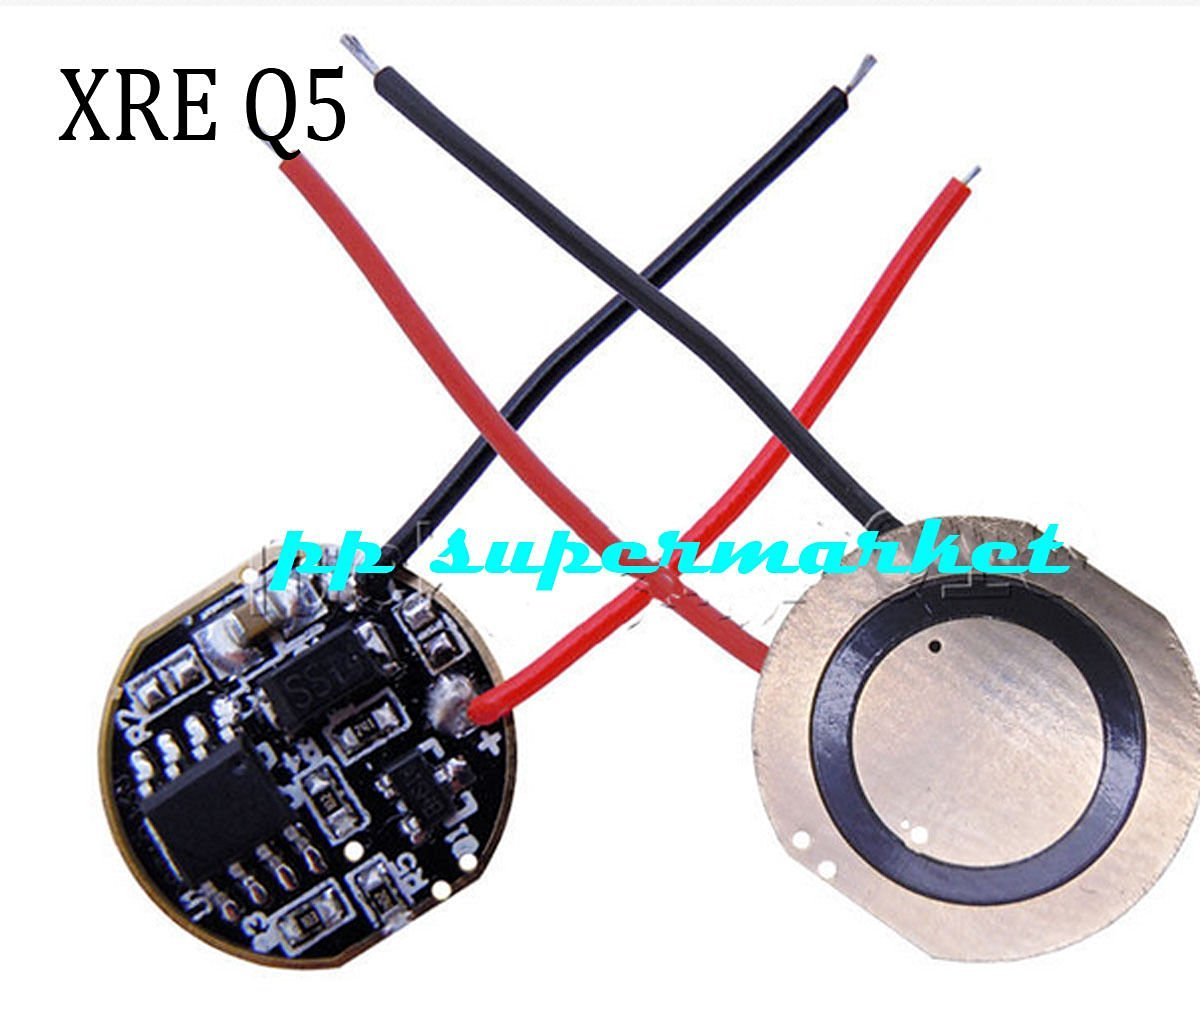 Cheap Simple Led Driver Circuit Find Dimmable White Lamp Electronic Circuits Diagram Get Quotations 5pcs Board For Cree Xr E Xre Q5 P4